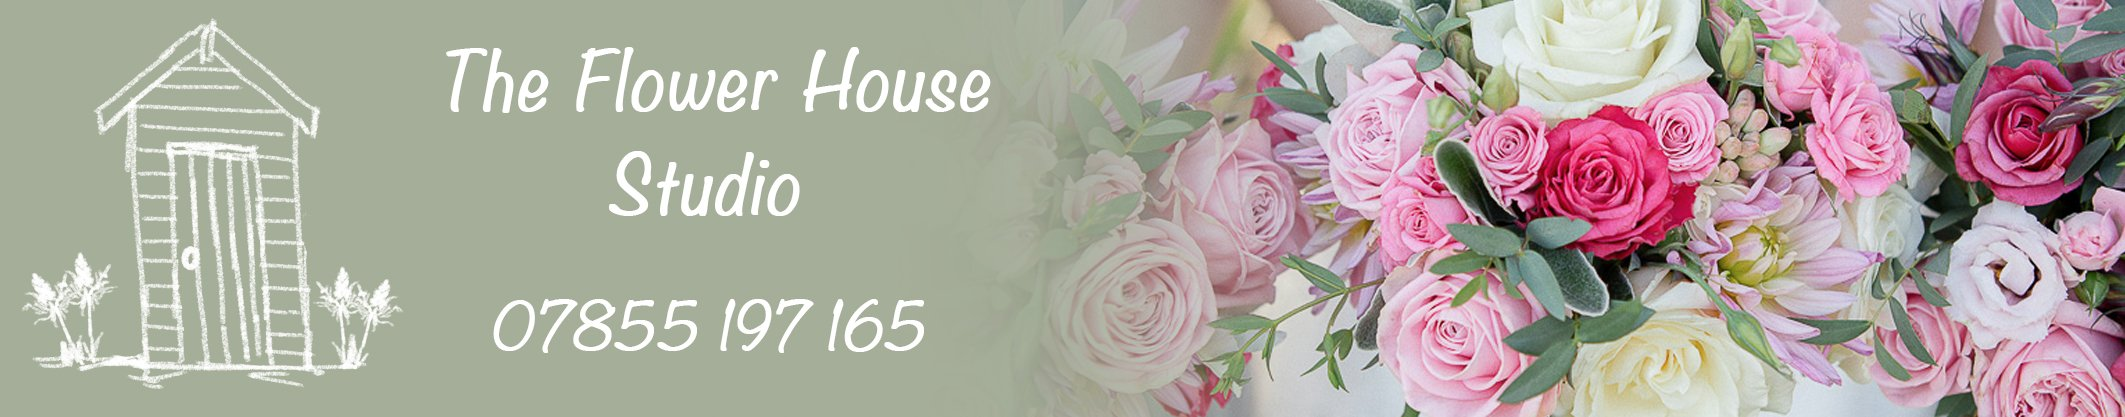 The Flower House Studio